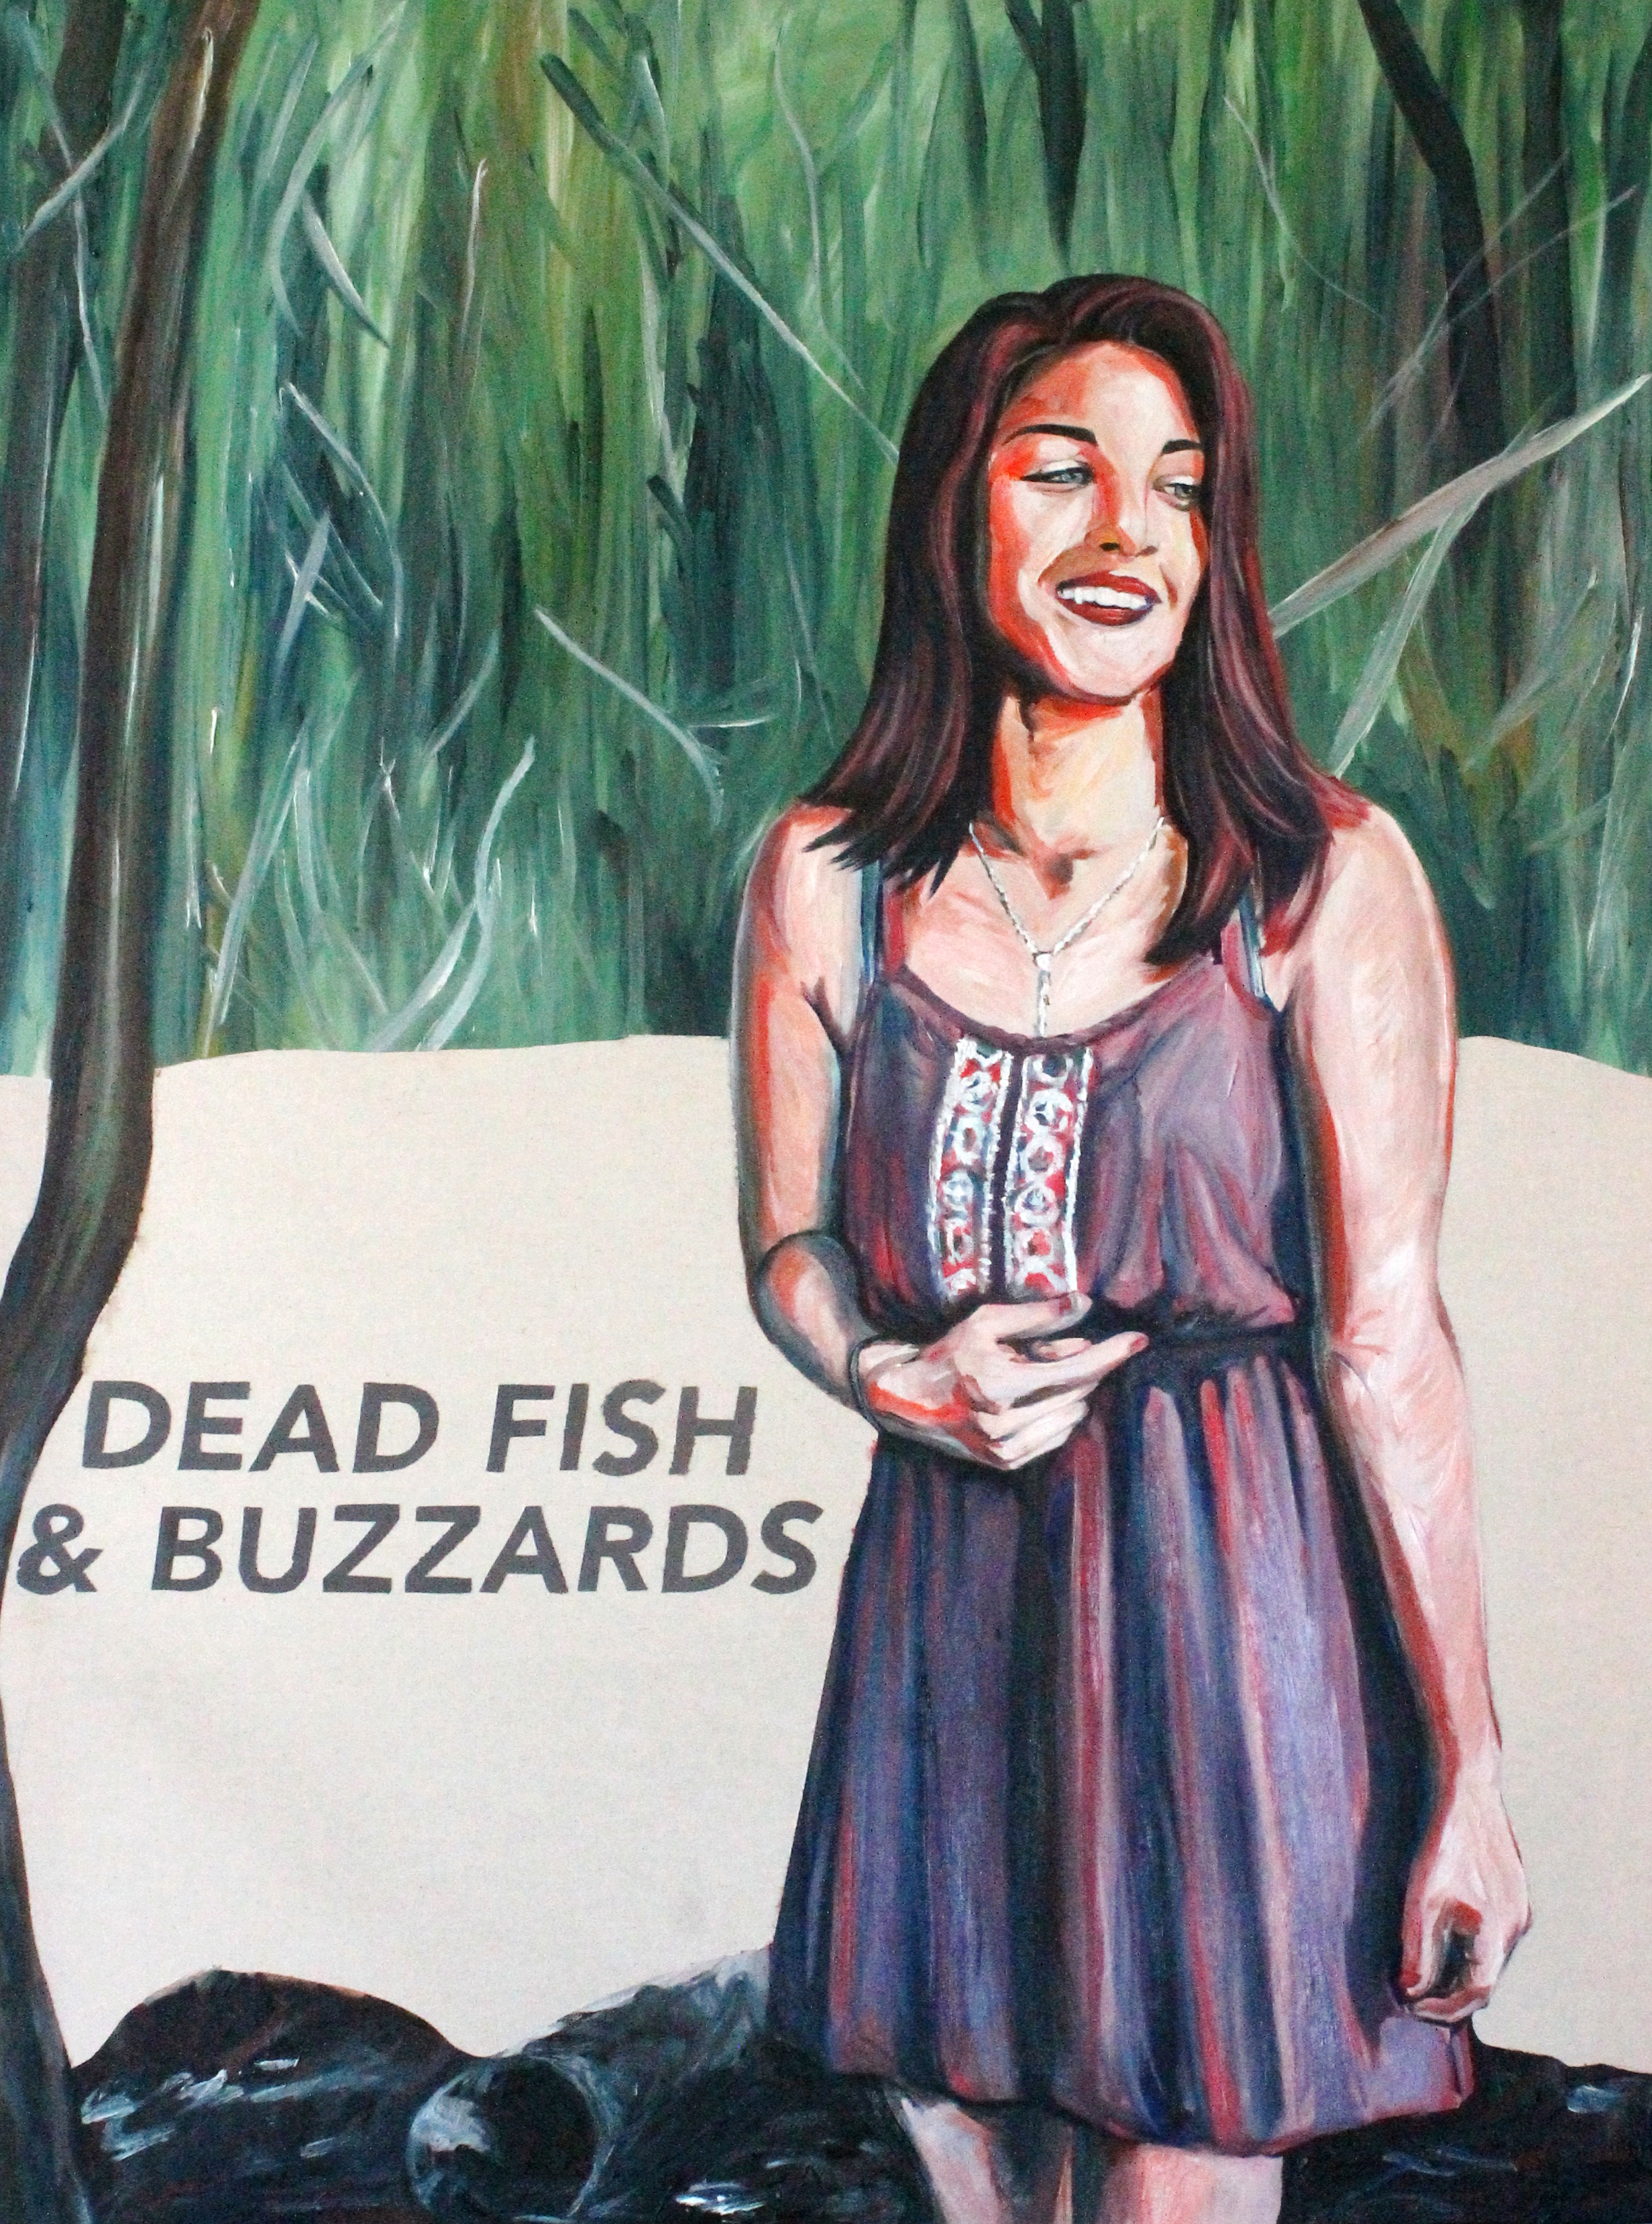 Untitled (Dead Fish & Buzzards)